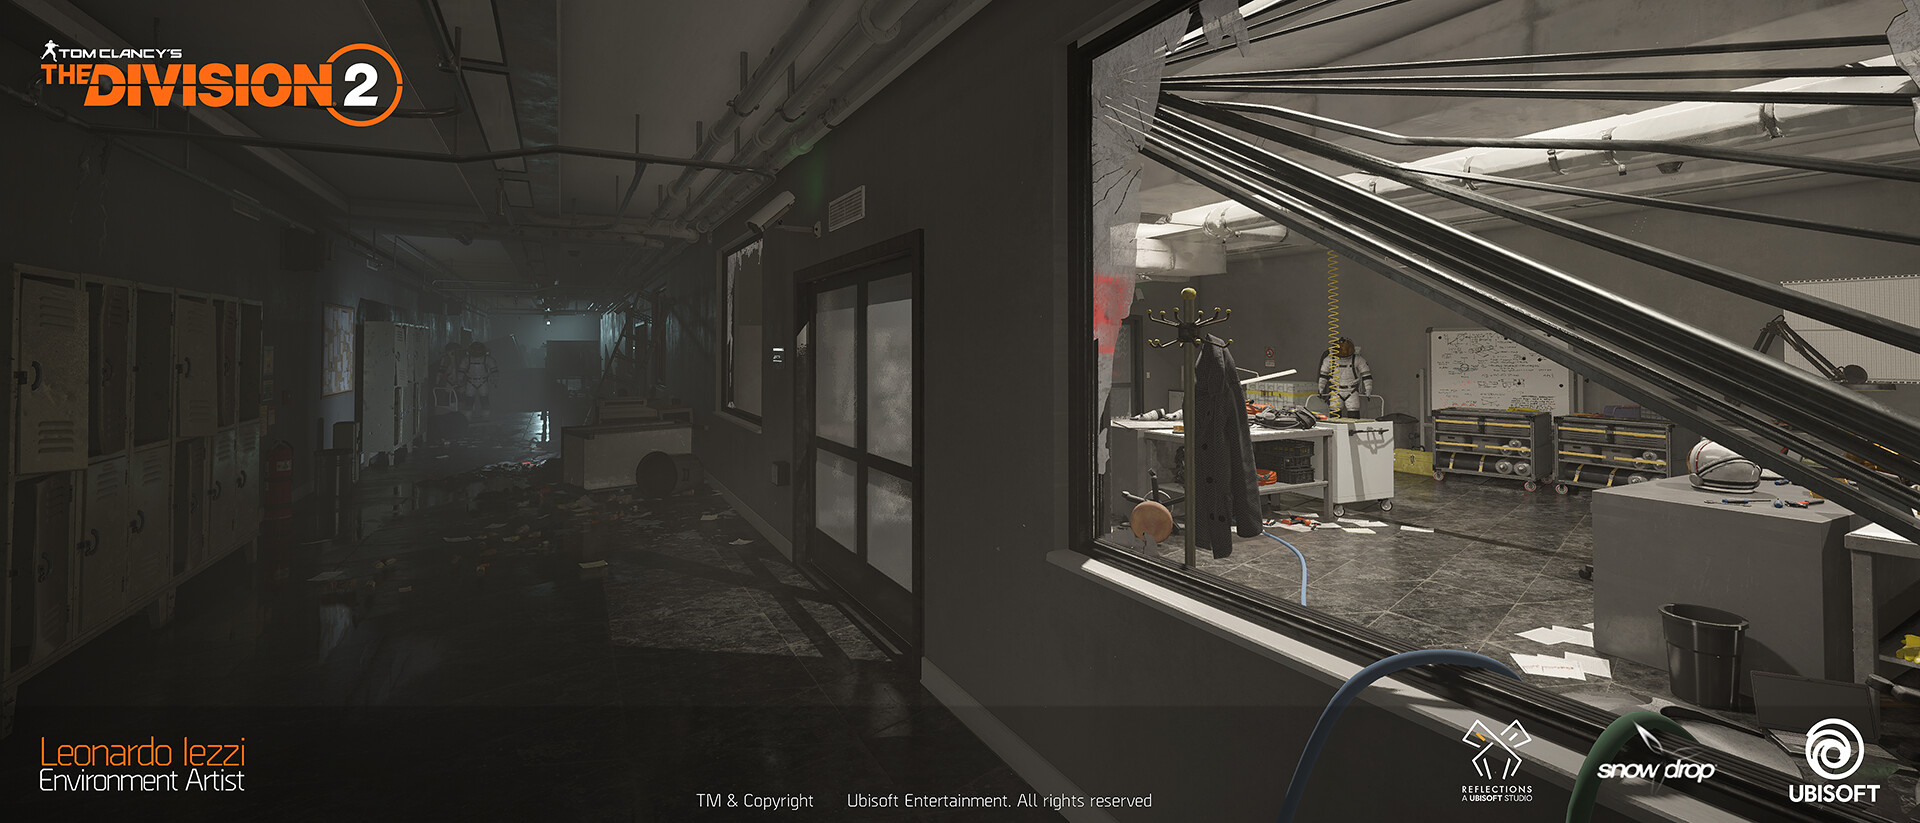 Leonardo iezzi leonardo iezzi the division 2 environment art 05 lab 010 wide